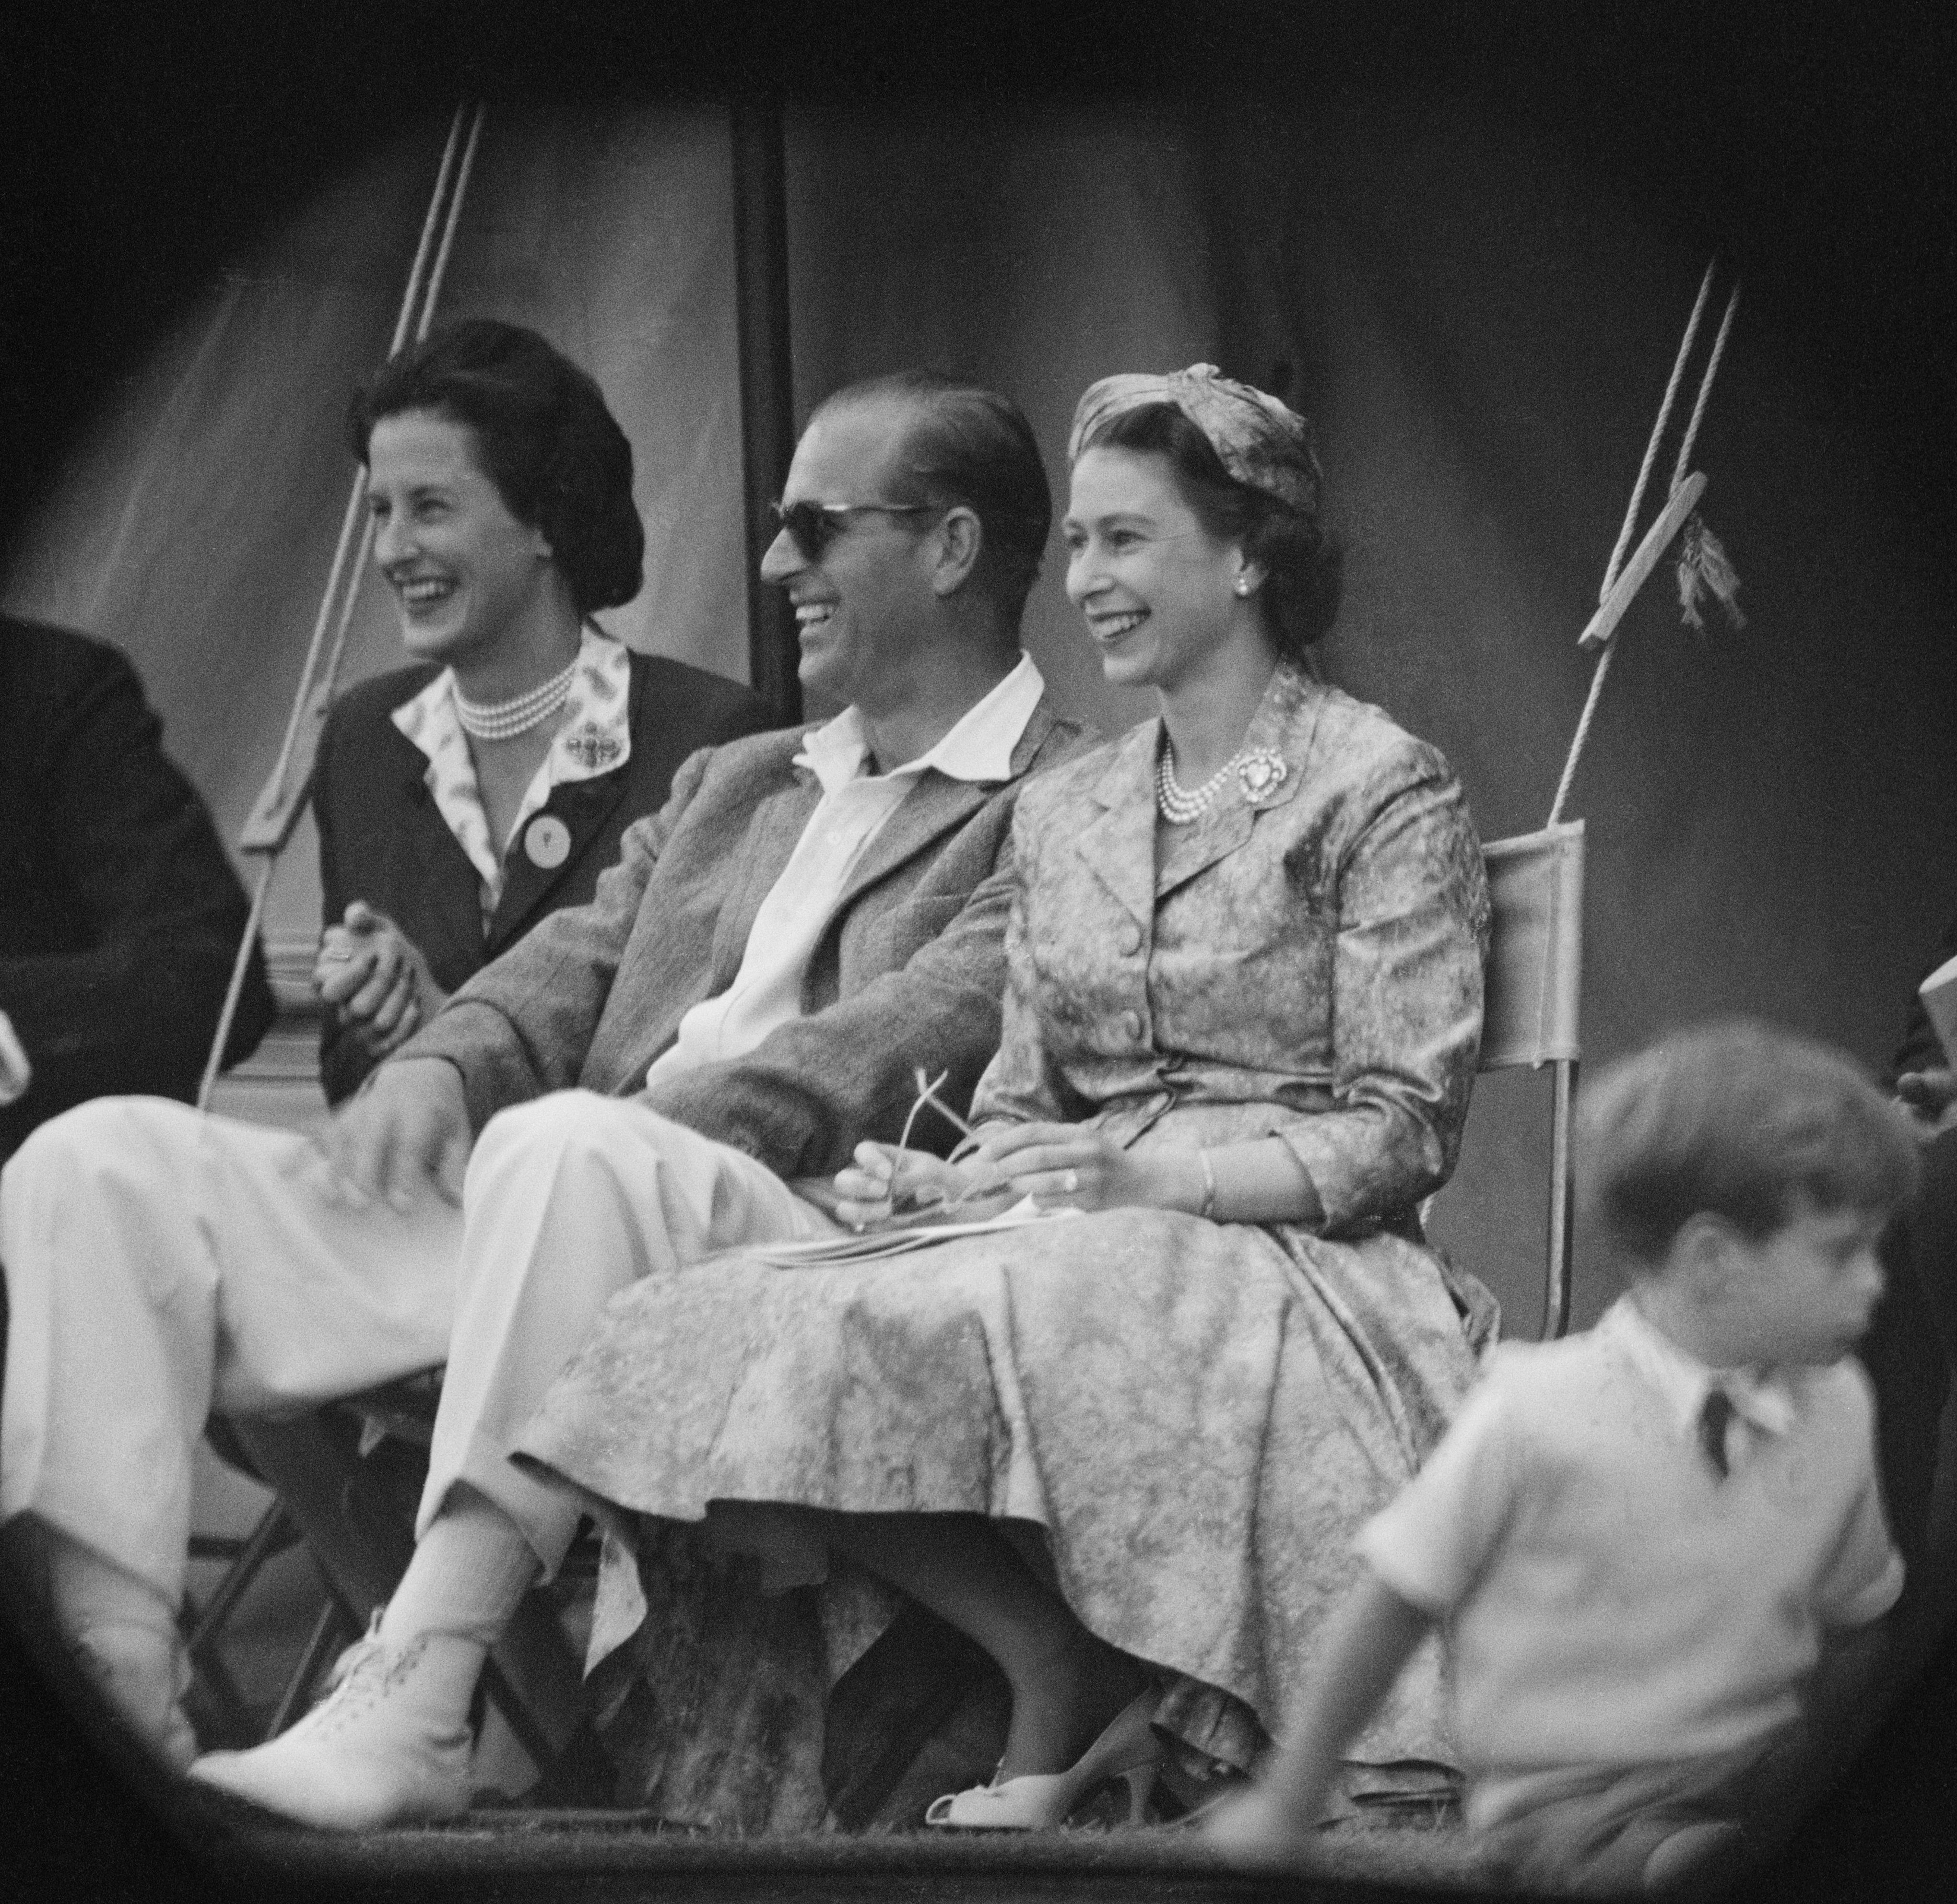 Queen Elizabeth II and Prince Philip watch a cricket match at Highclere Castle in Hampshire, in 1958 | Source: Getty Images